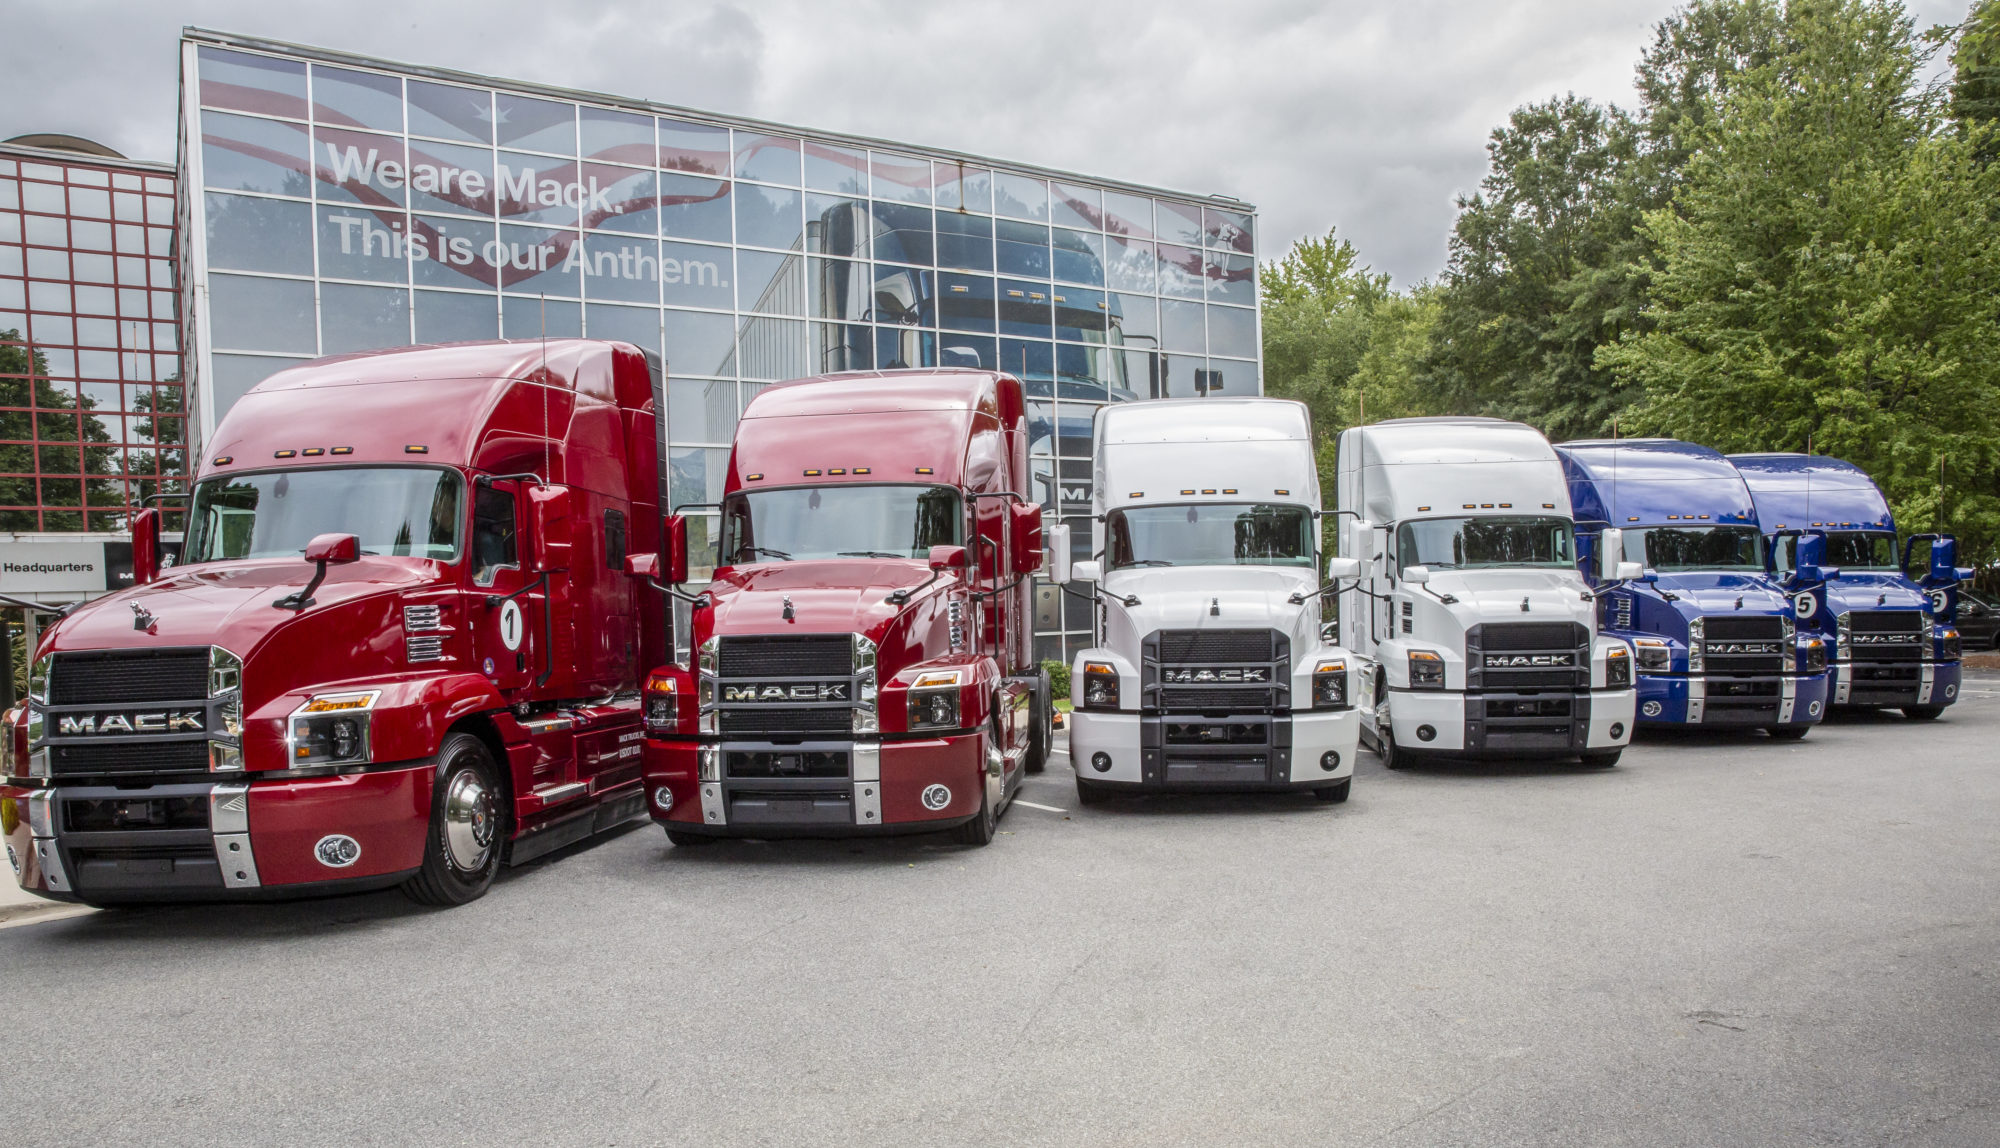 Pushing 10: Mack test drive shows role of tech in fuel economy